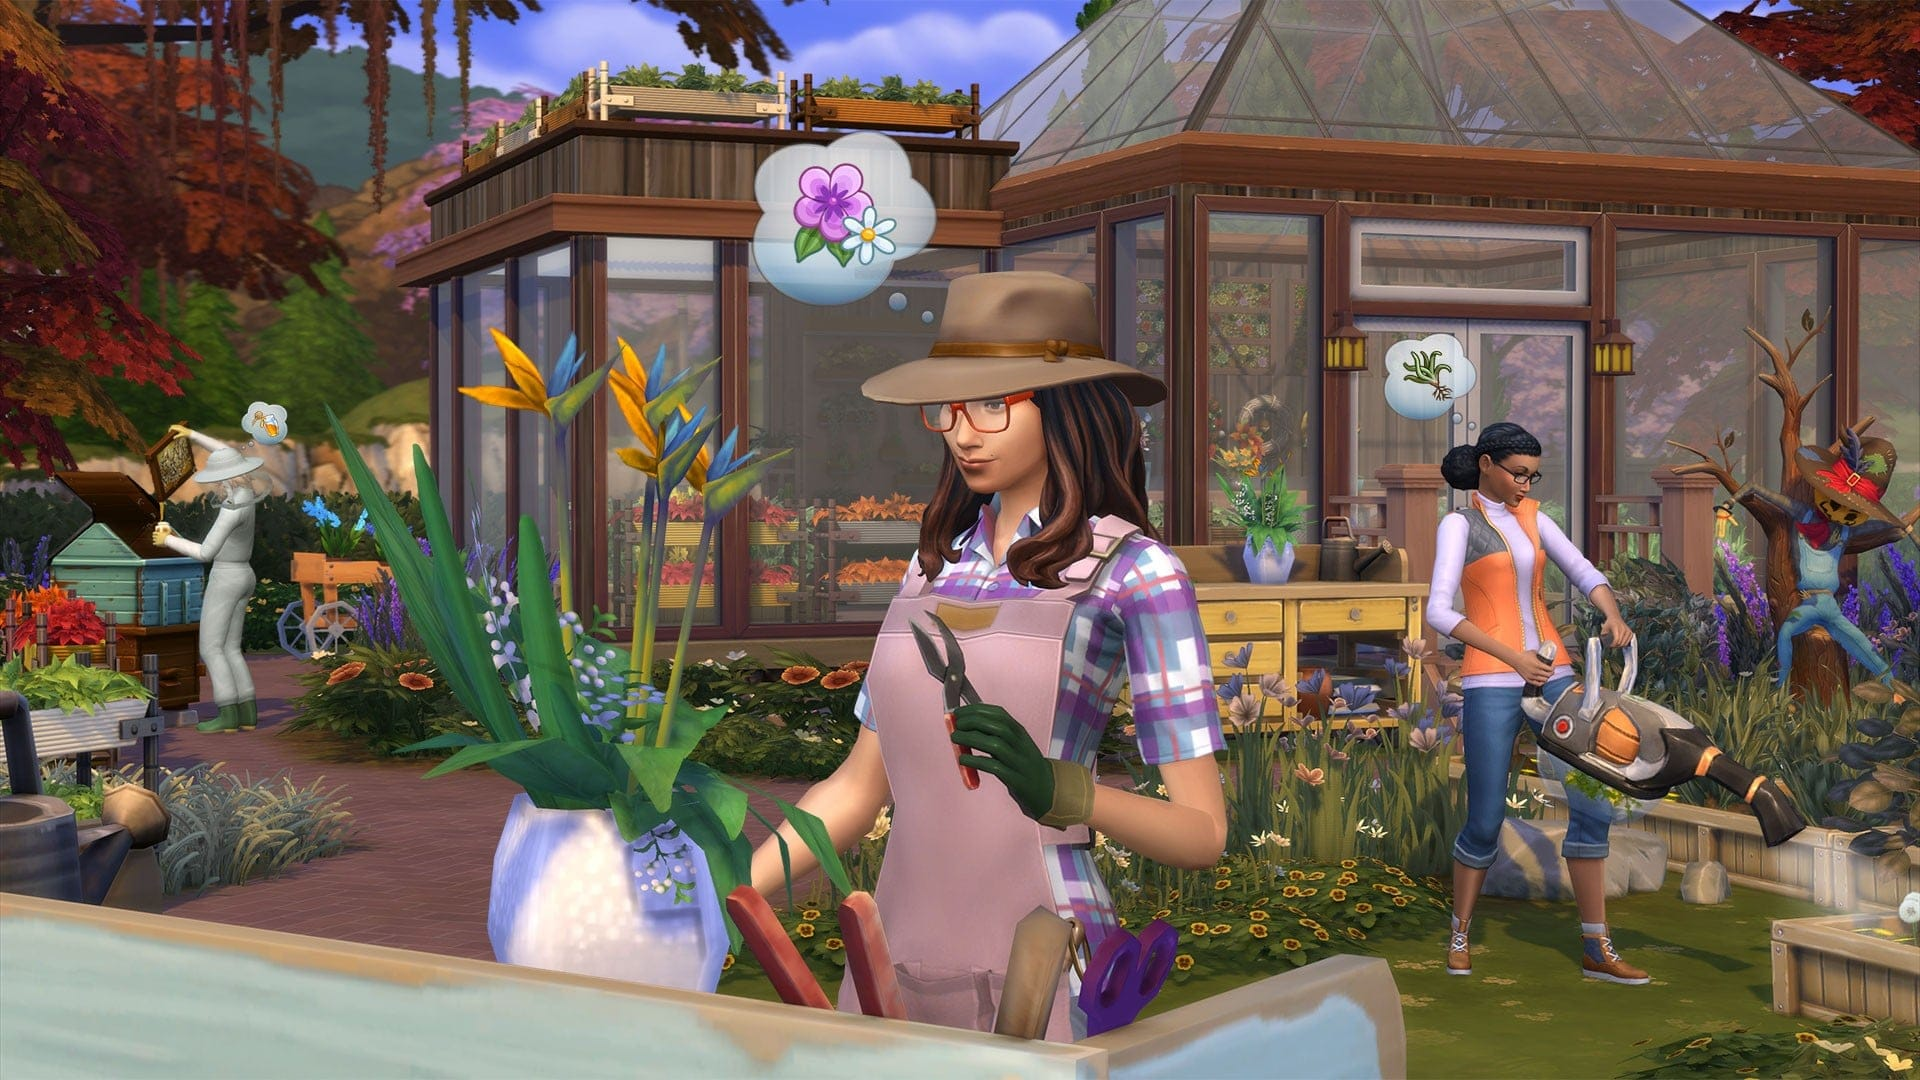 Les Sims 4 Saisons [22 Juin 2018] TS4_0345_EP05_OFFICIAL_SCREENS_04_003_1080